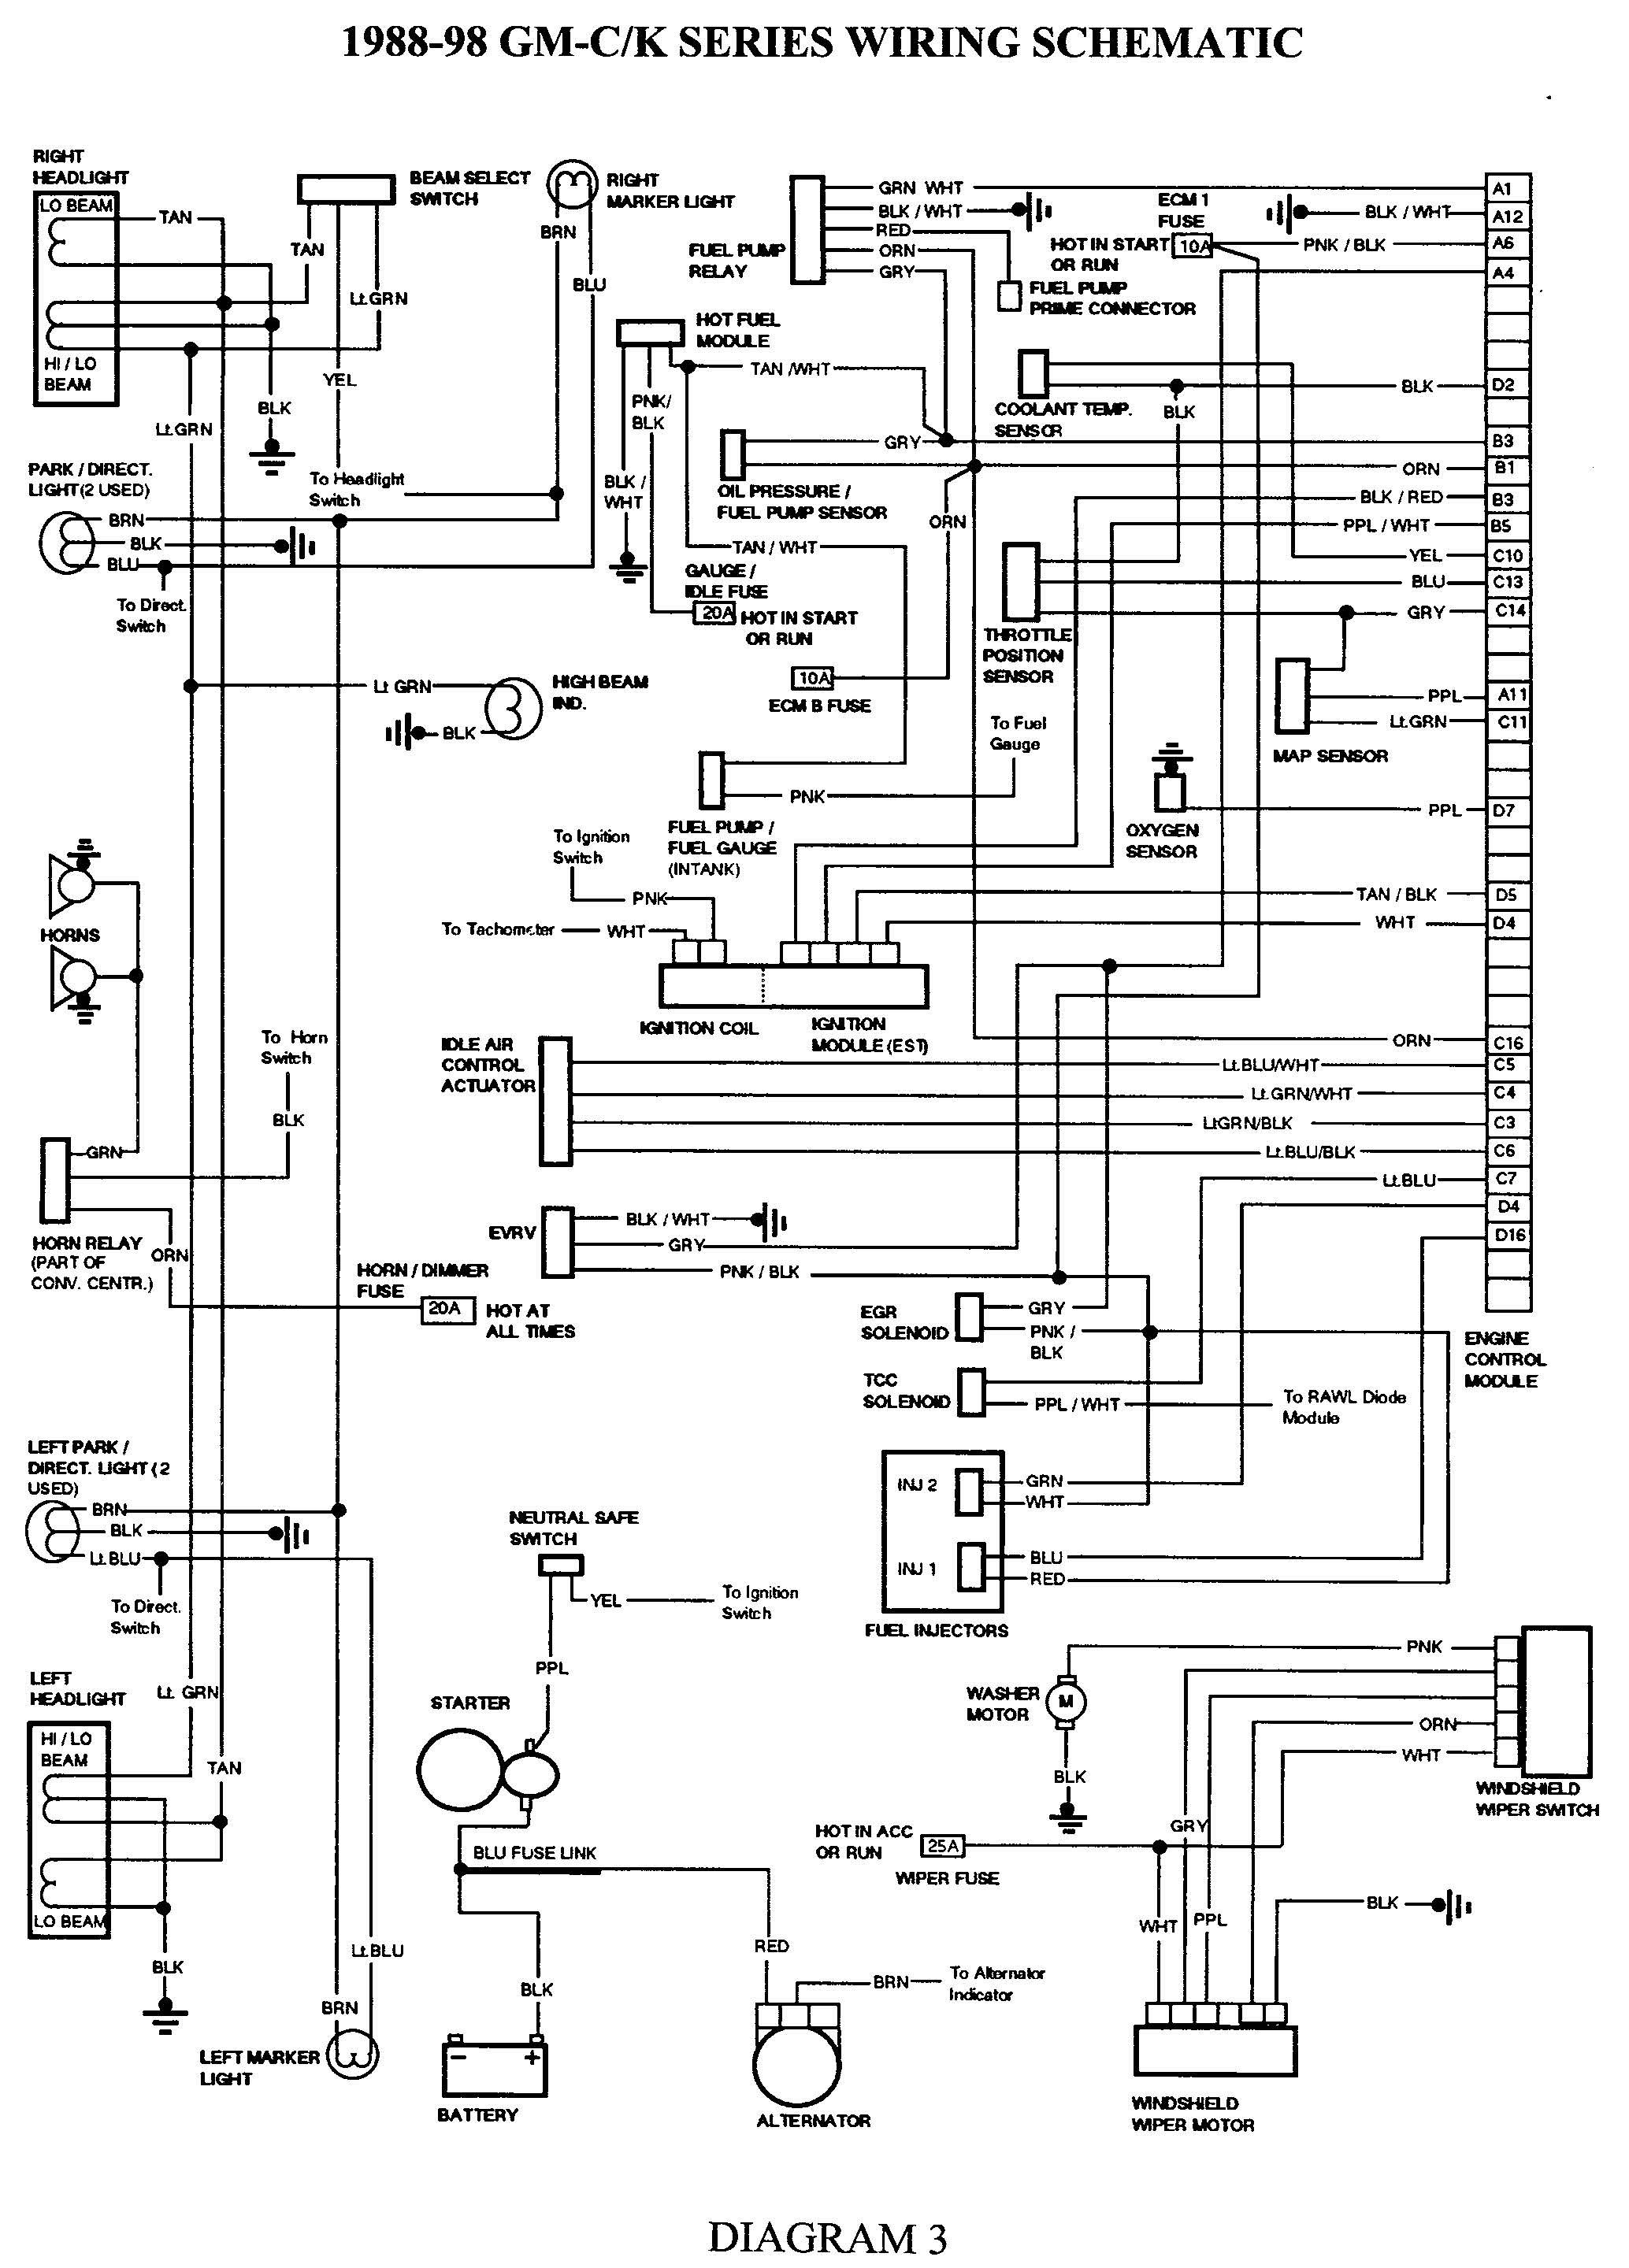 1986 chevrolet c10 57 v8 engine wiring diagram